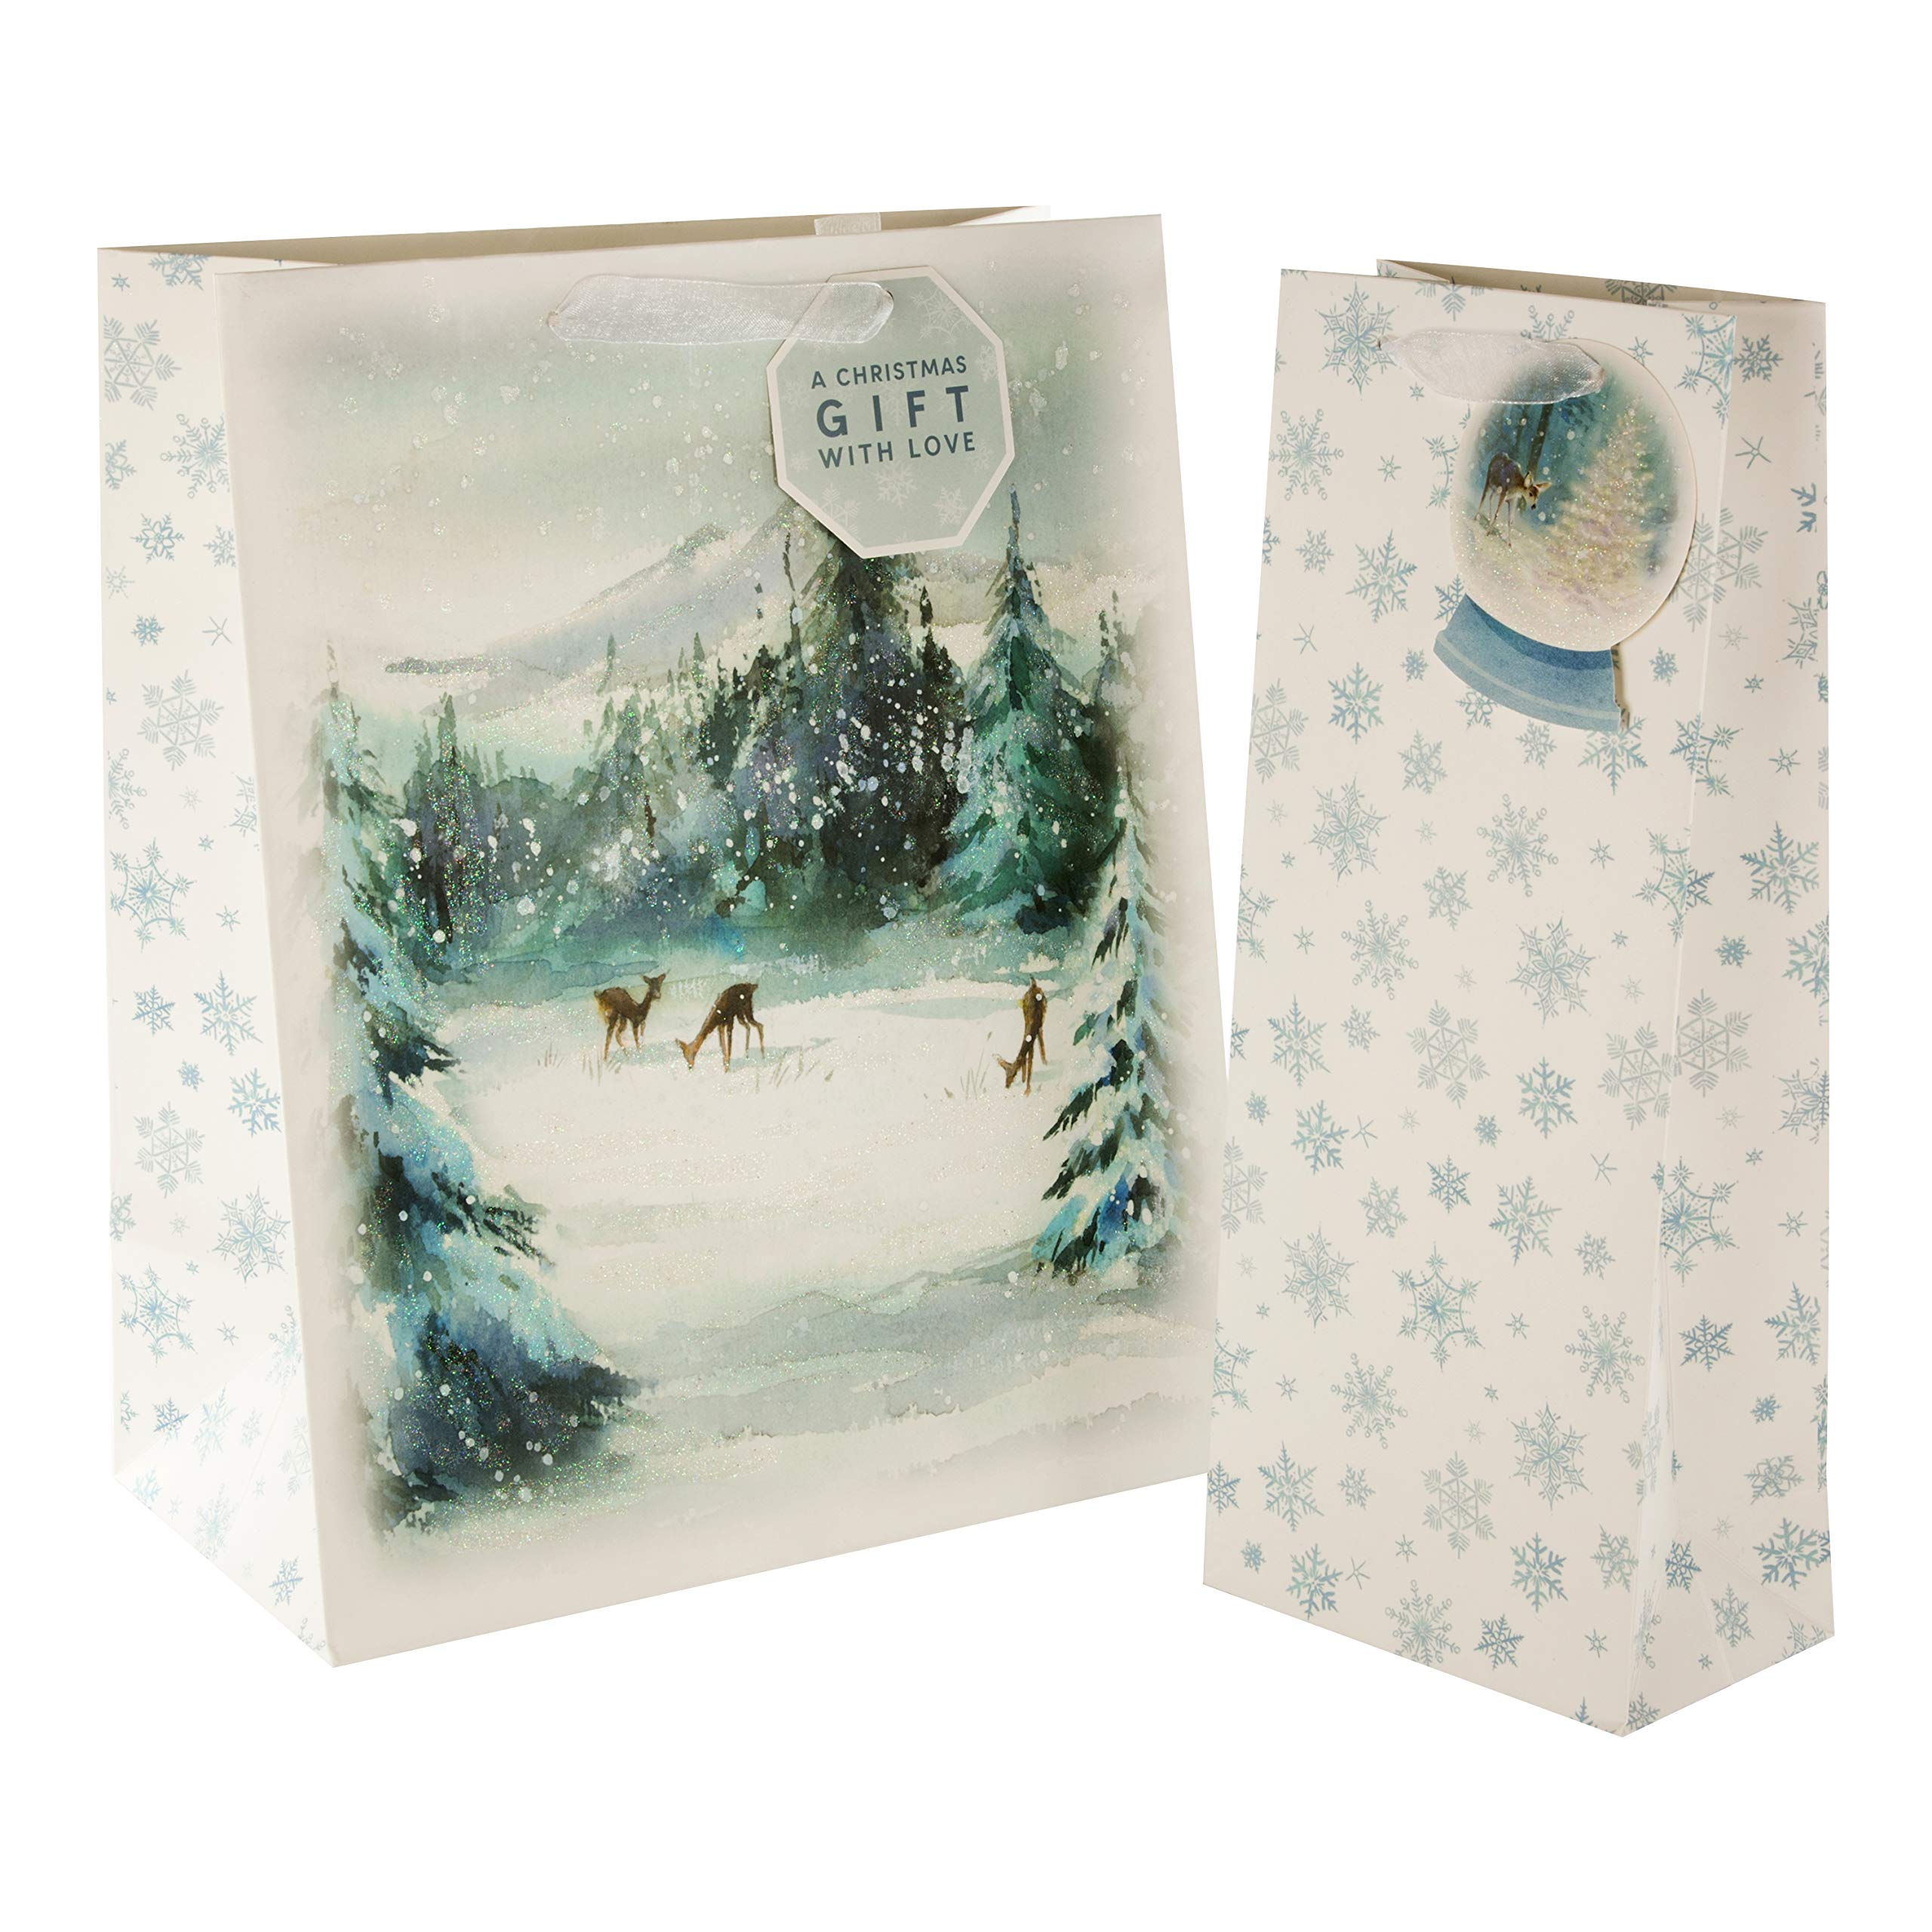 Winter Wonderland Christmas Bag Bundle from Hallmark  332 Bags in 332  Co Ordinating Designs with Matching Tags   Get Ahead Christmas